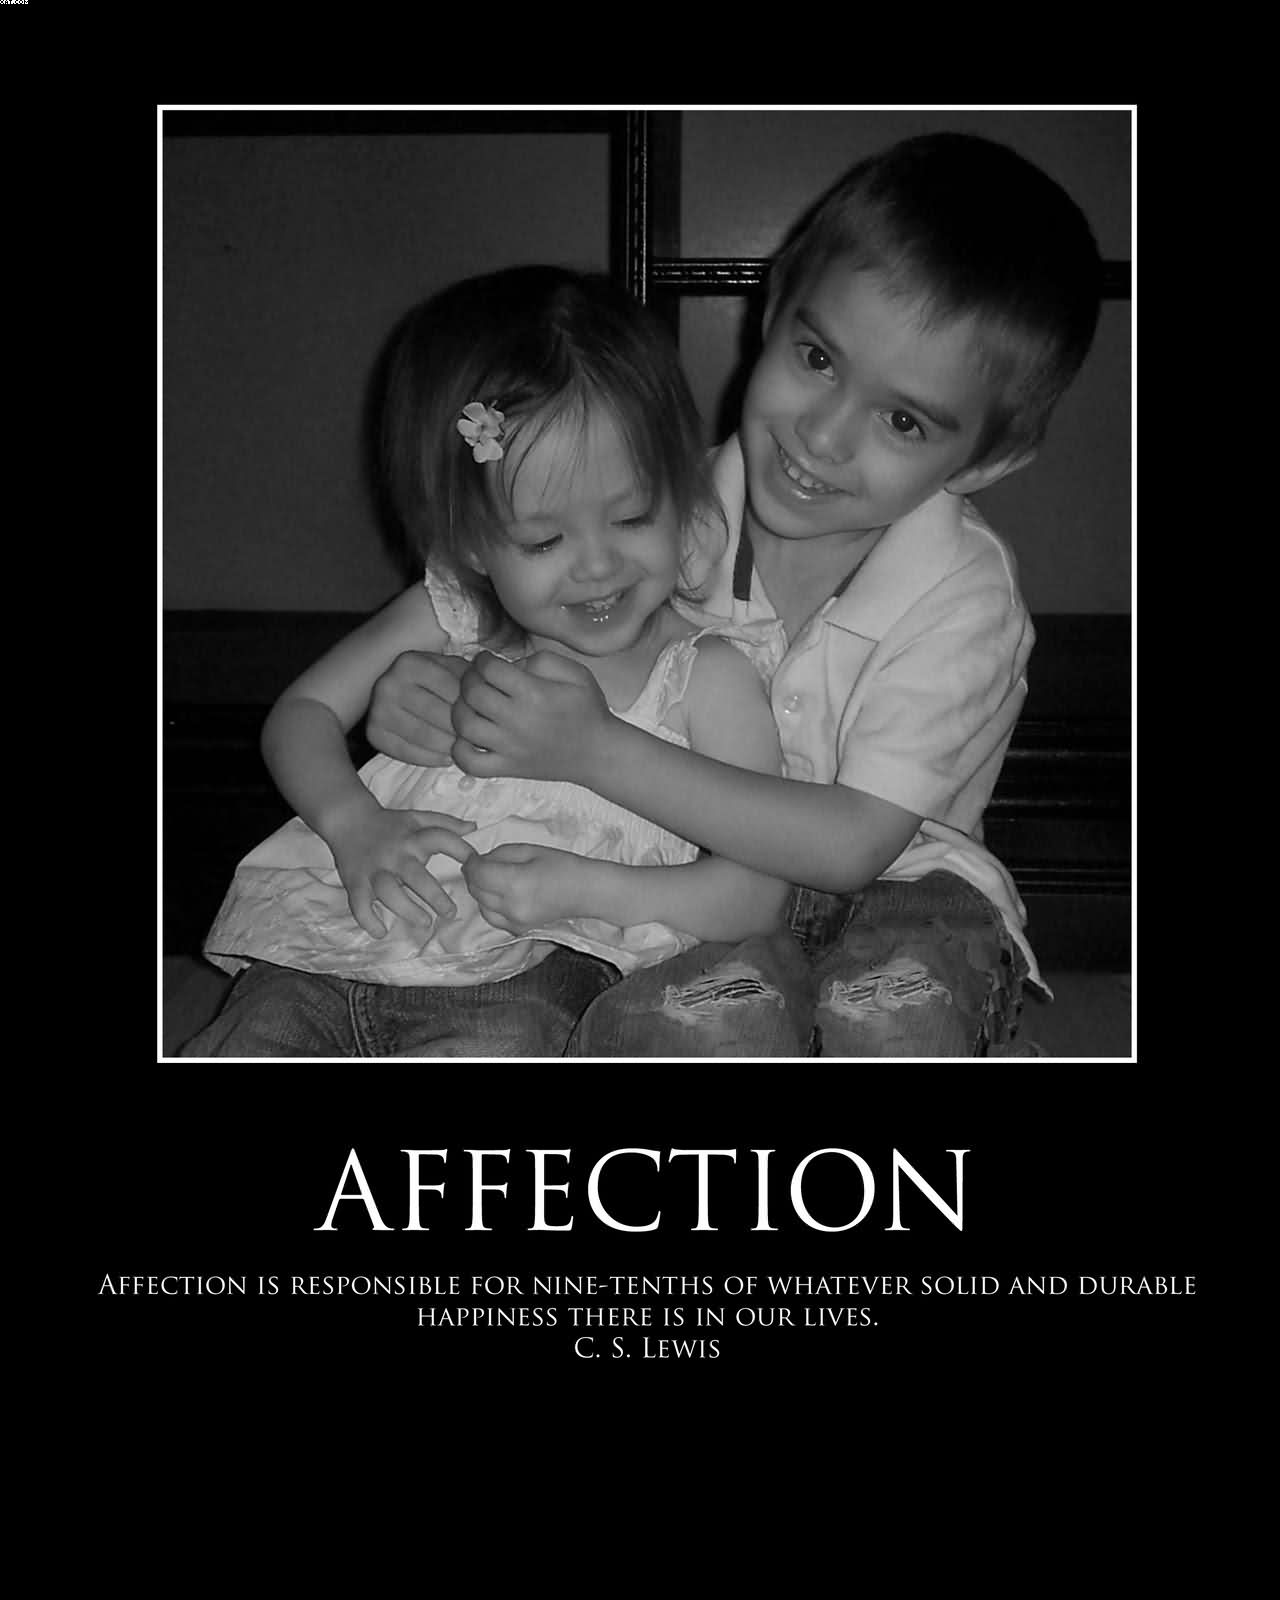 Quotes About Affection Affection Quotes Pictures And Affection Quotes Images  46